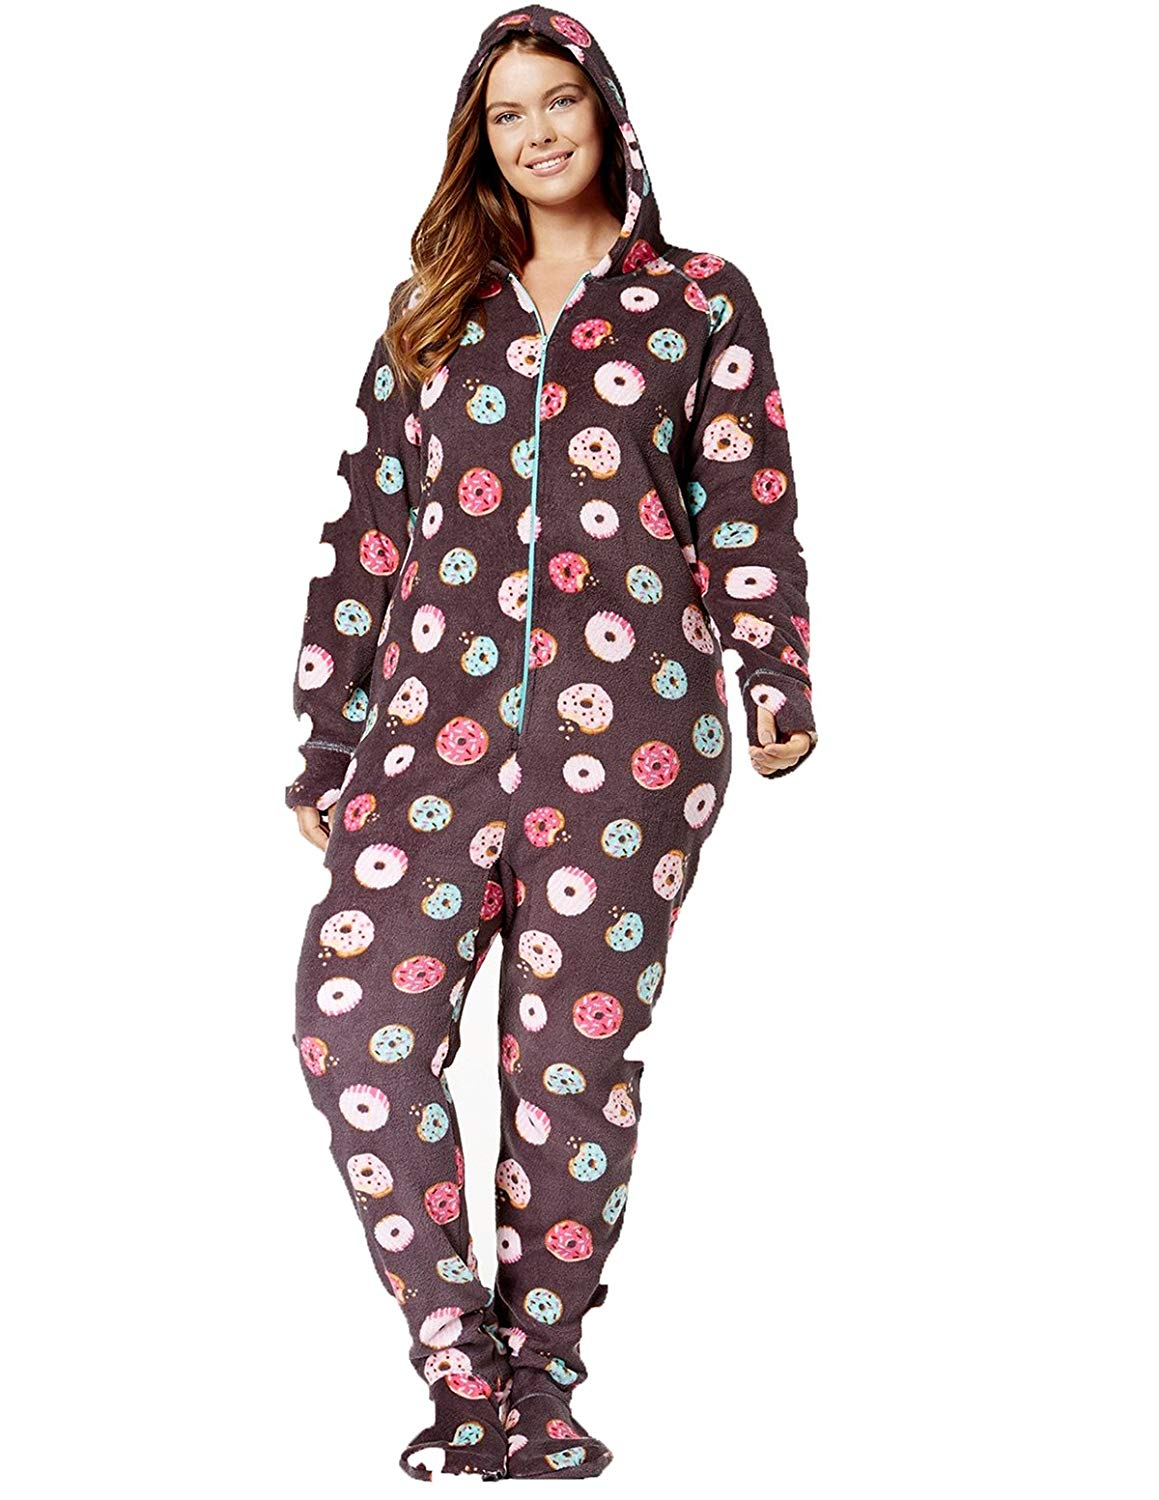 07f49f5052e Jenni by Jennifer Moore Hooded Footed Printed Pajama Jumpsuit. Size   XLarge. Color Grey